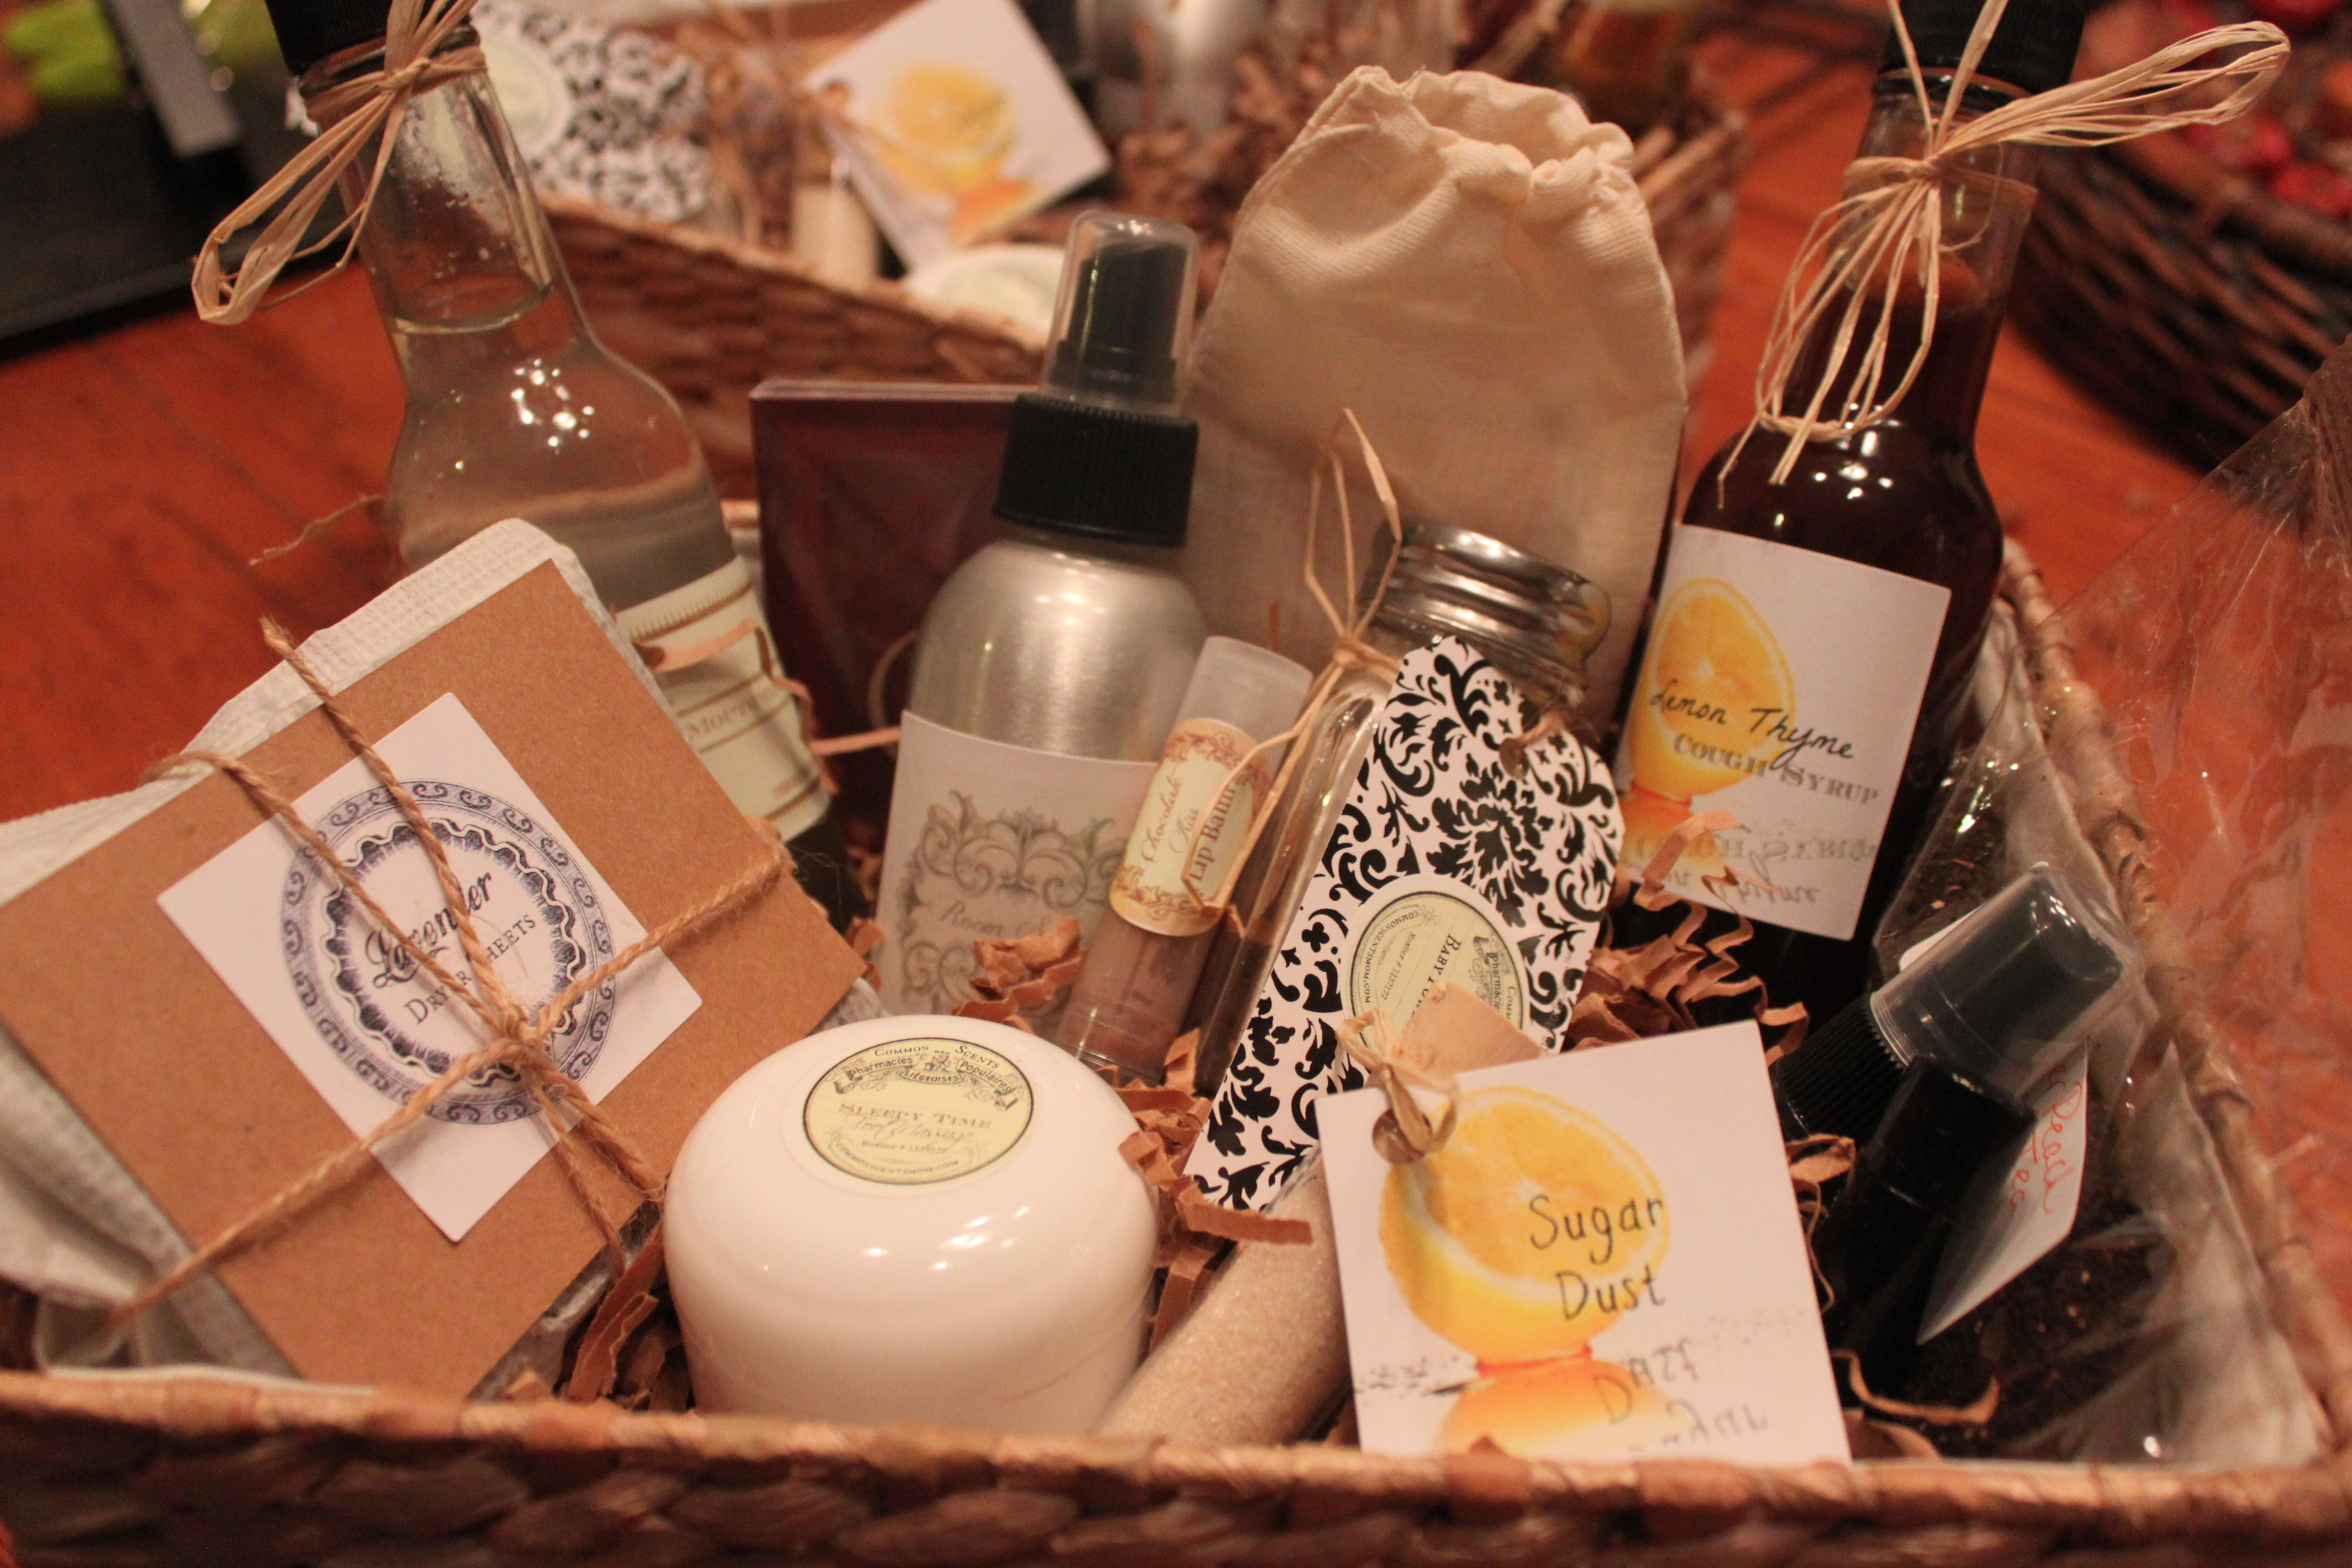 Themes For Gift Baskets: How To Make Unique Essential Oil Gift Baskets!